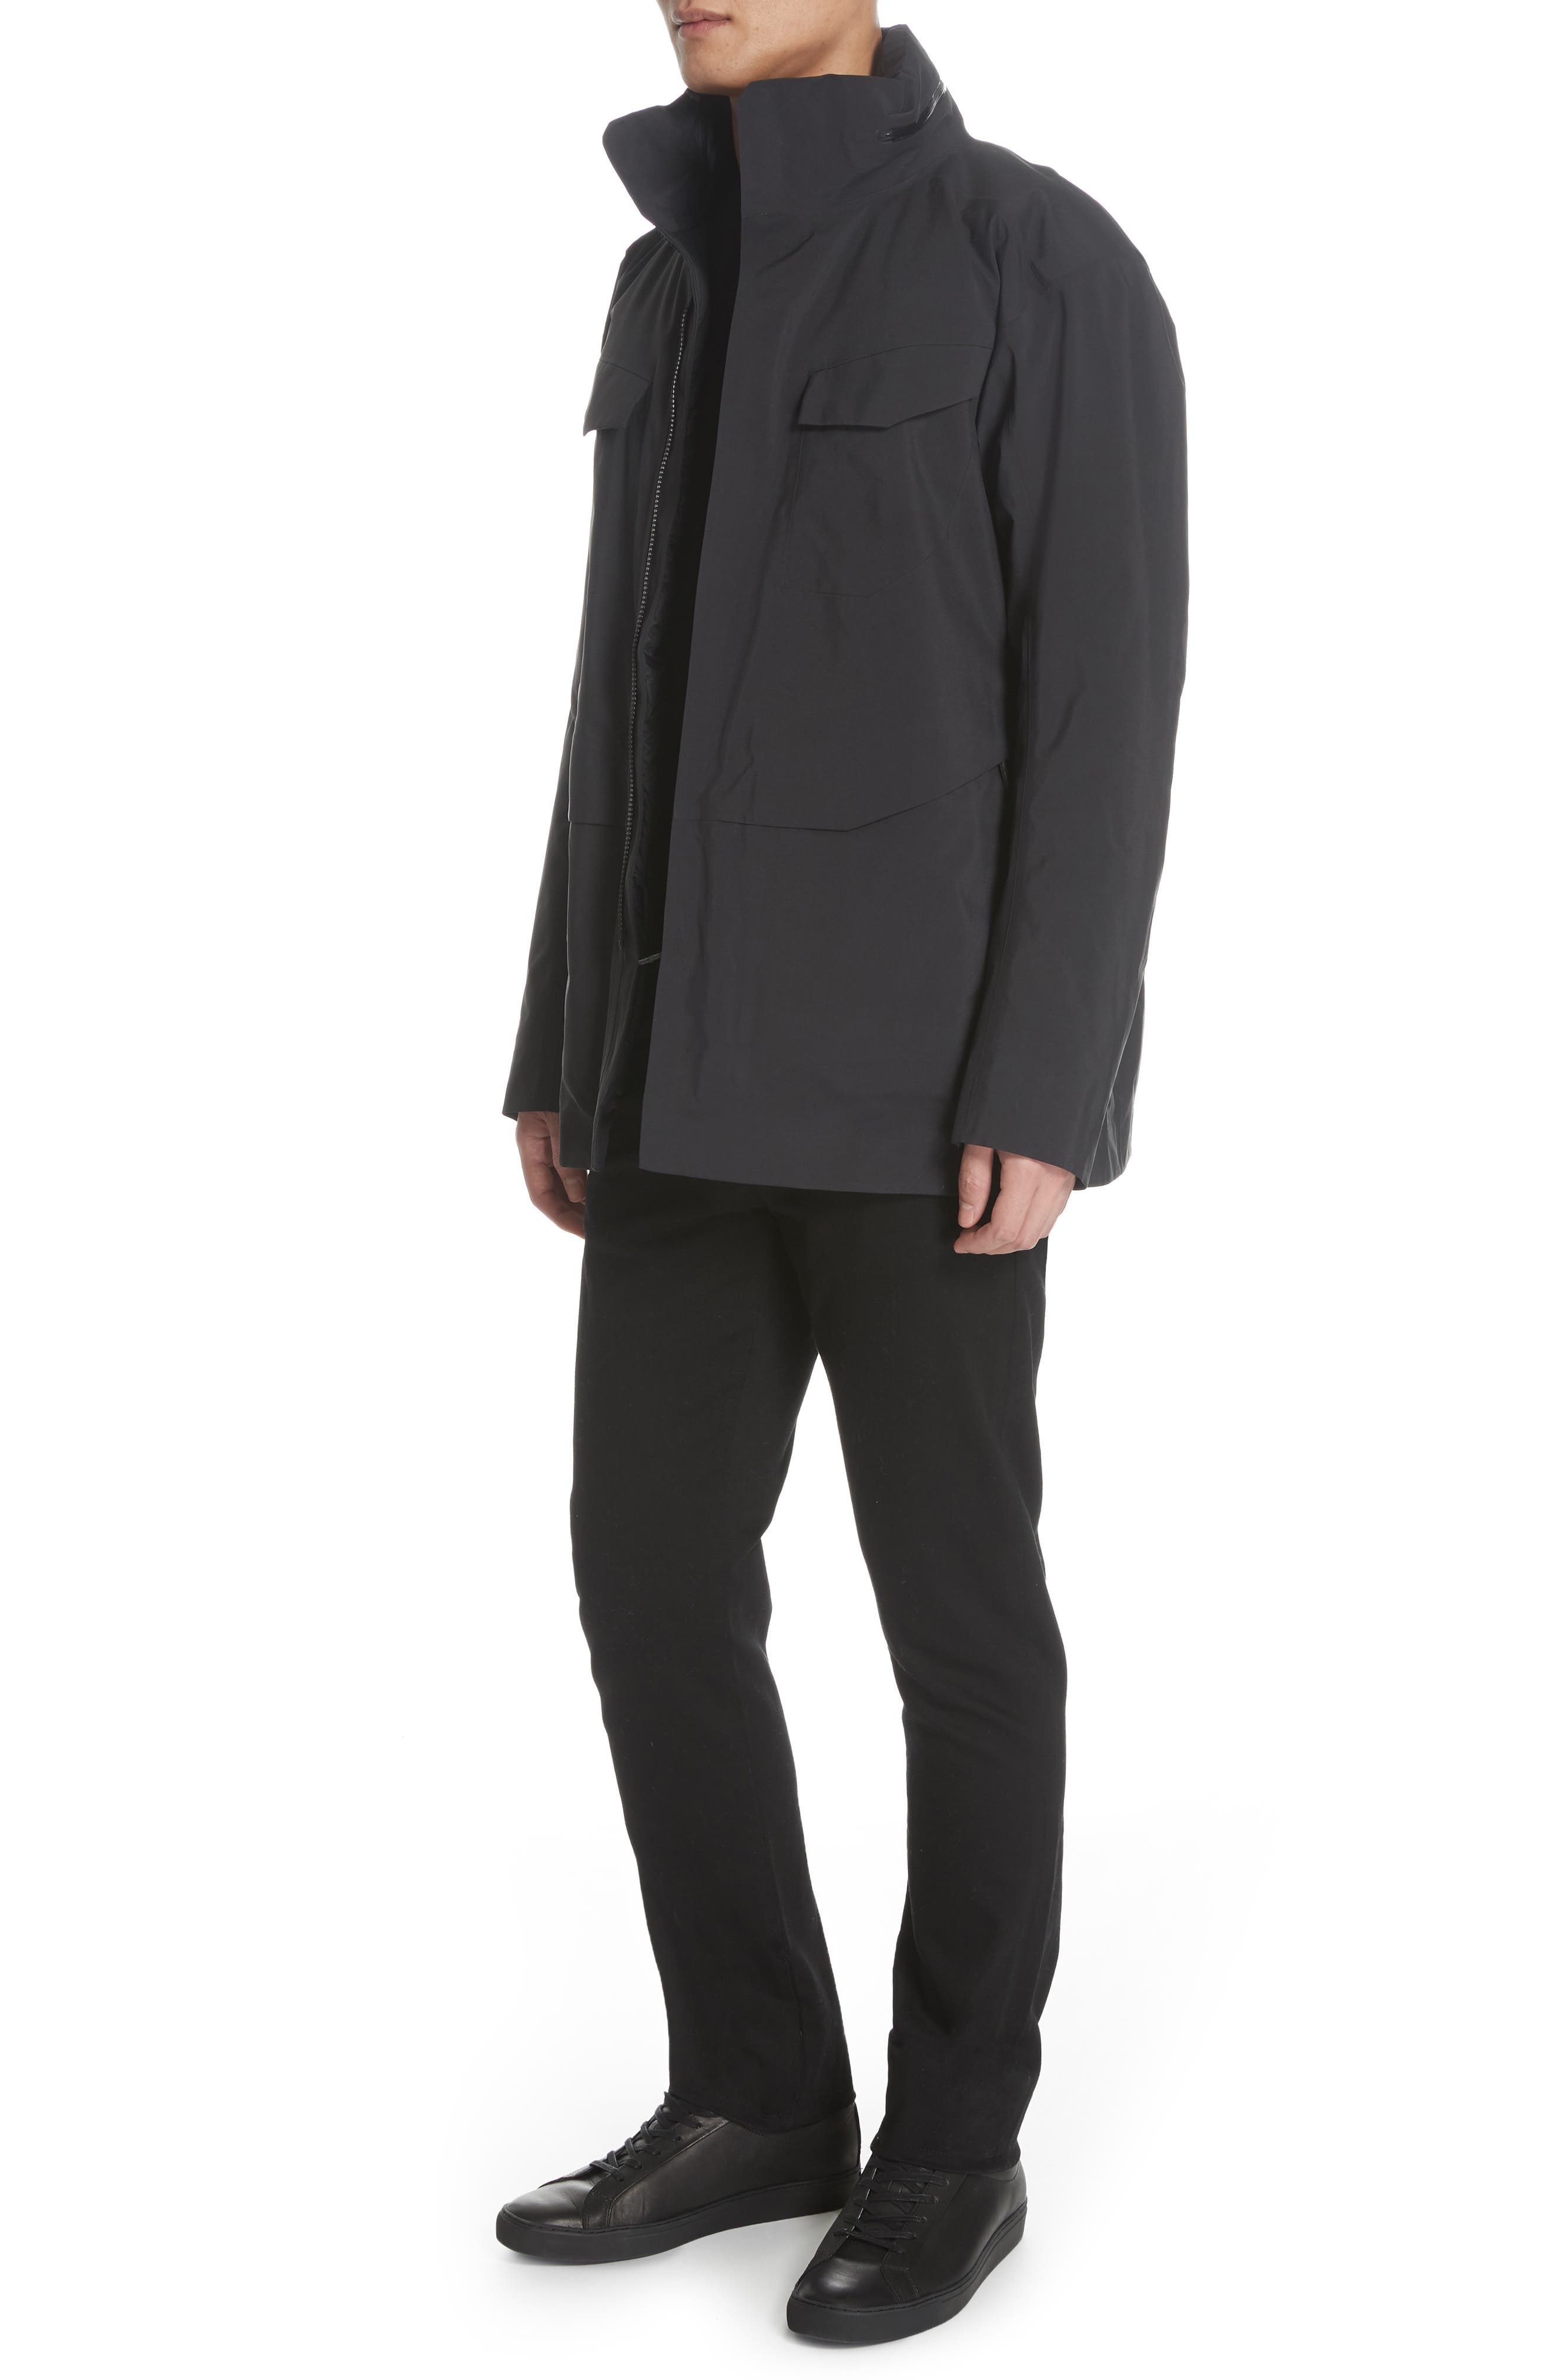 Gore-Tex<sup>®</sup> Pro Waterproof/Windproof Insulated Field Jacket,                             Alternate thumbnail 4, color,                             BLACK